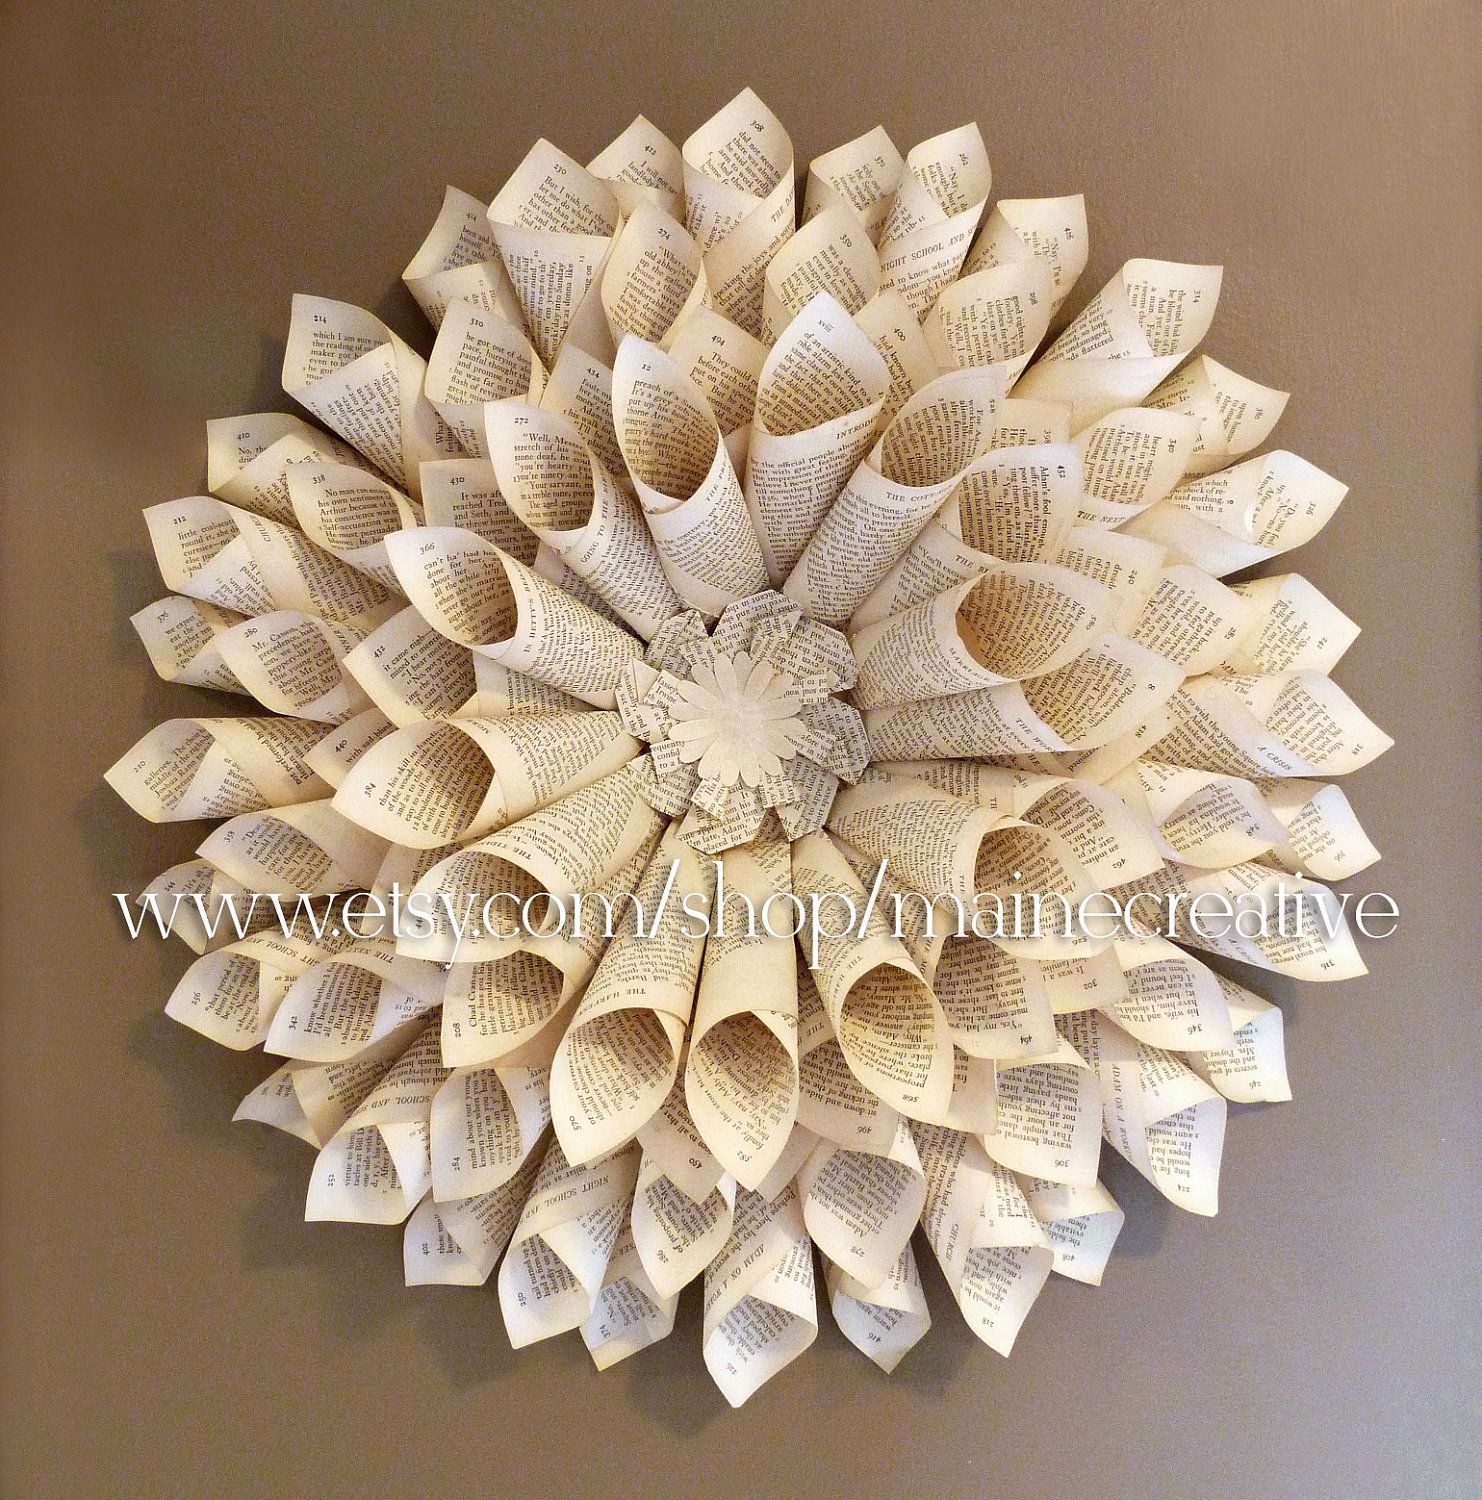 Bookpage wallflower 3 dimensional eco friendly recycled